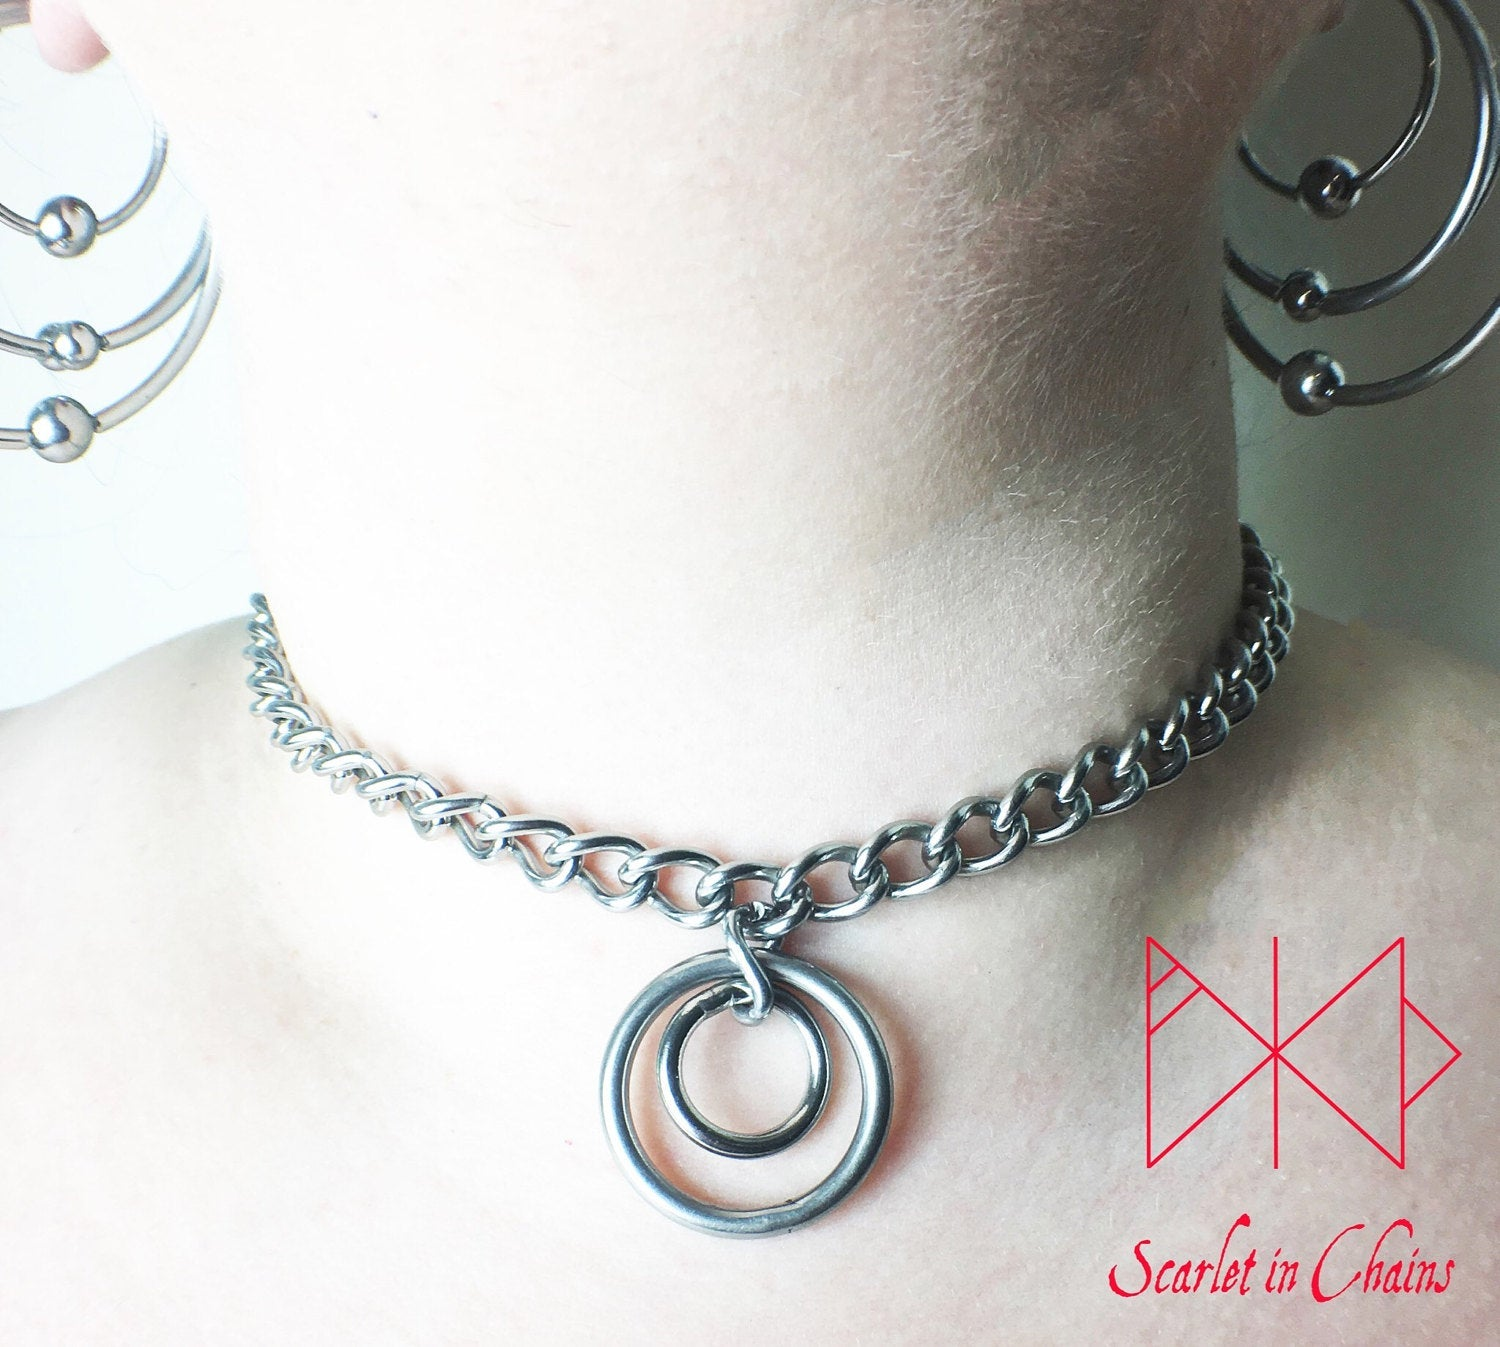 Stainless steel chain choker with a double stainless steel O ring pendant which consists of a smaller o ring inside a larger one. worn